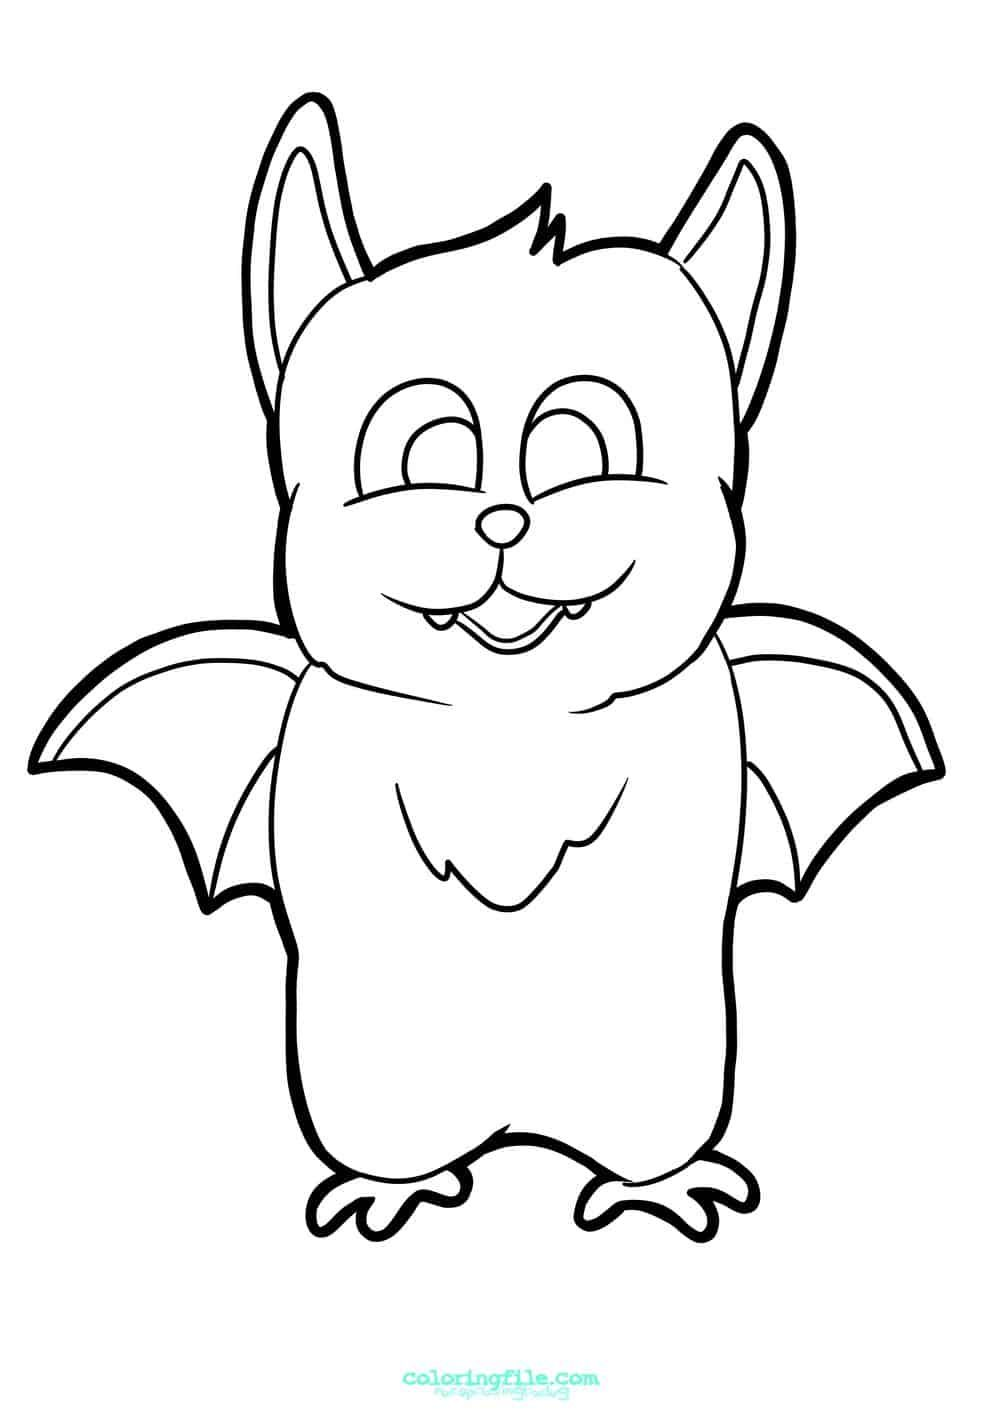 Printable Halloween Bat Coloring Pages Halloween Coloring Pages Printable Bat Coloring Pages Halloween Coloring